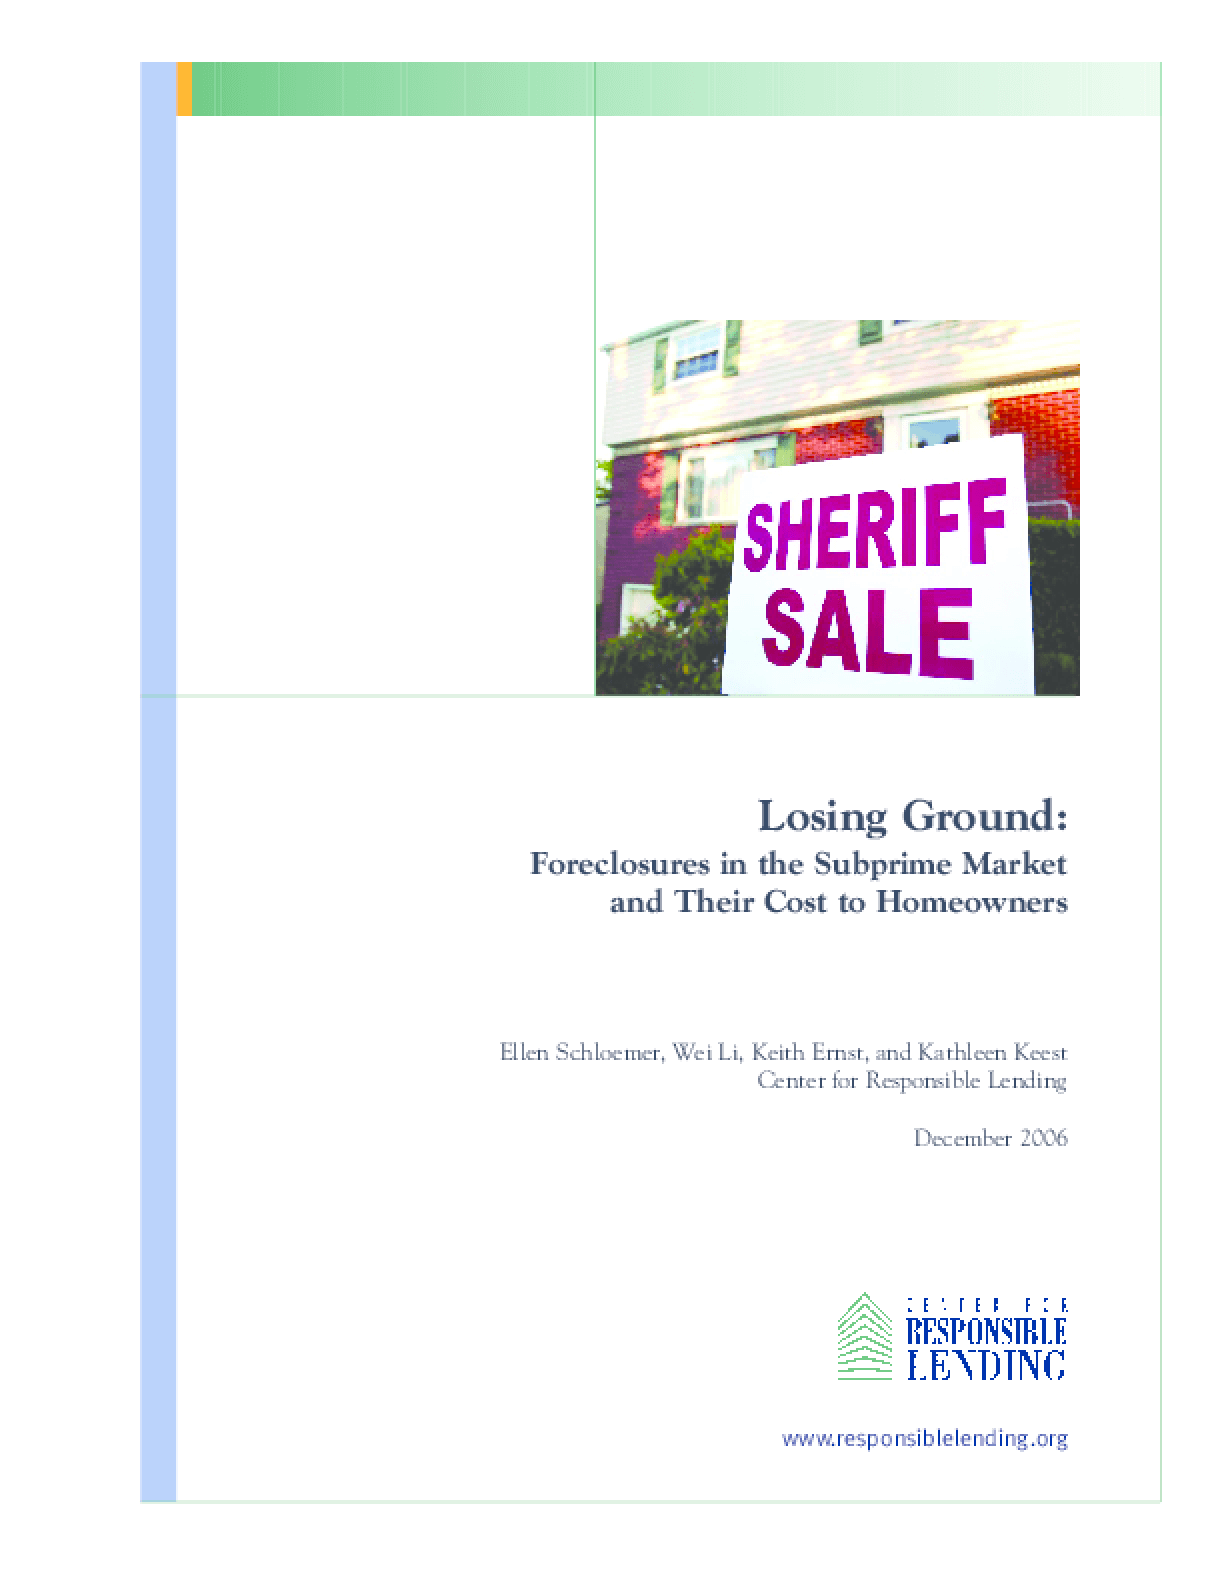 Losing Ground: Foreclosures in the Subprime Market and Their Cost to Homeowners